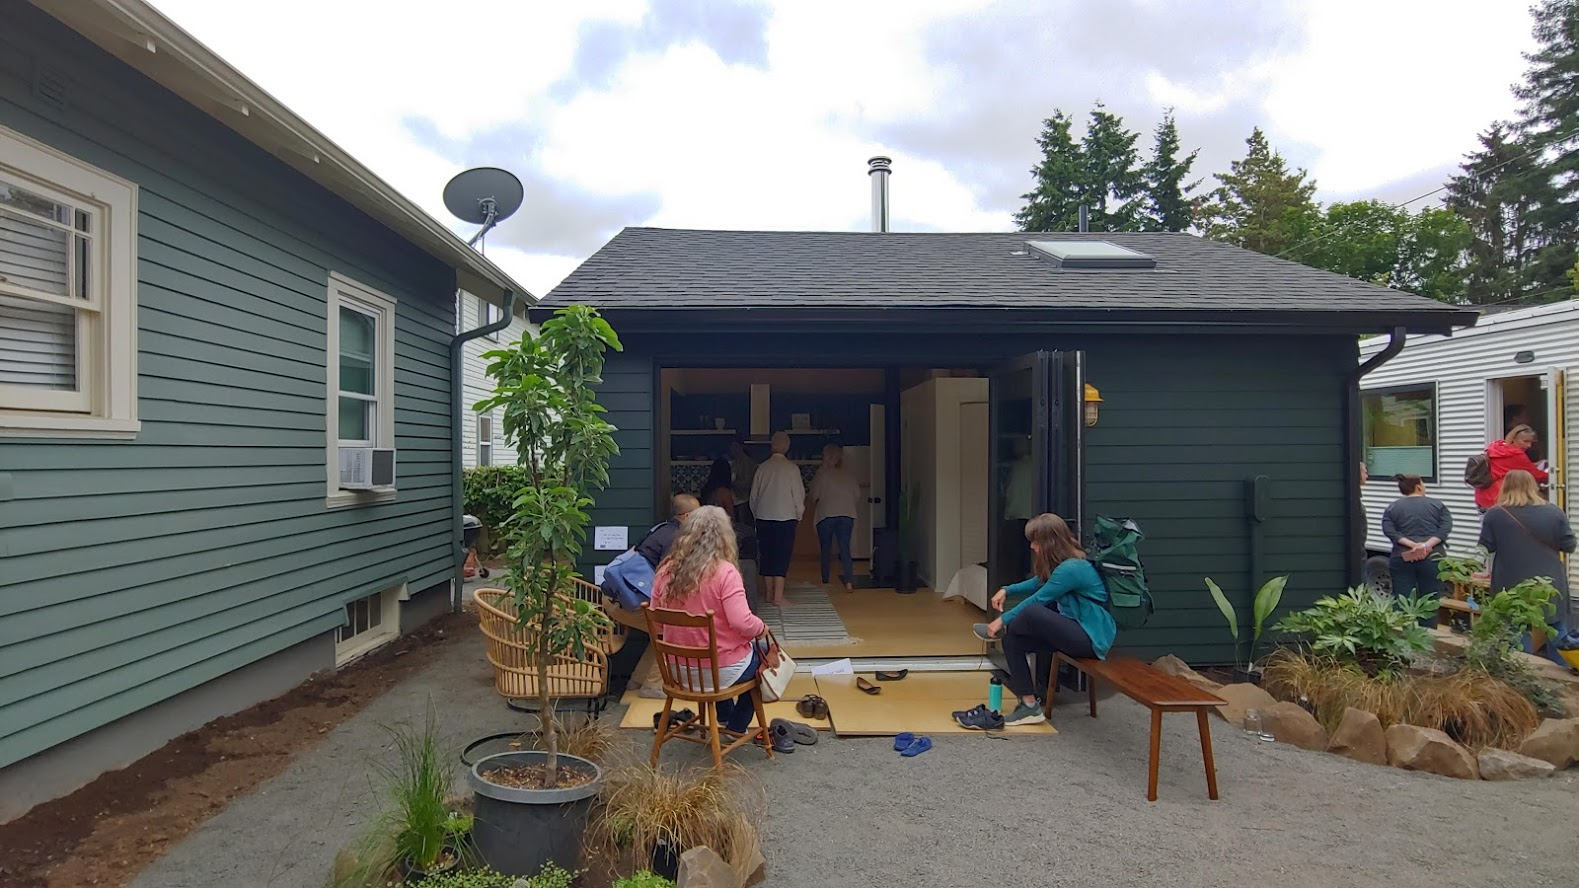 A different world in the backyard! There is a detached unit in the backyard (middle), and another tiny house on the right. 3 units in 1! Owner lives in the middle while renting out the main house. Tiny house is an Airbnb. Party central! Builder: Sprucebox Construction